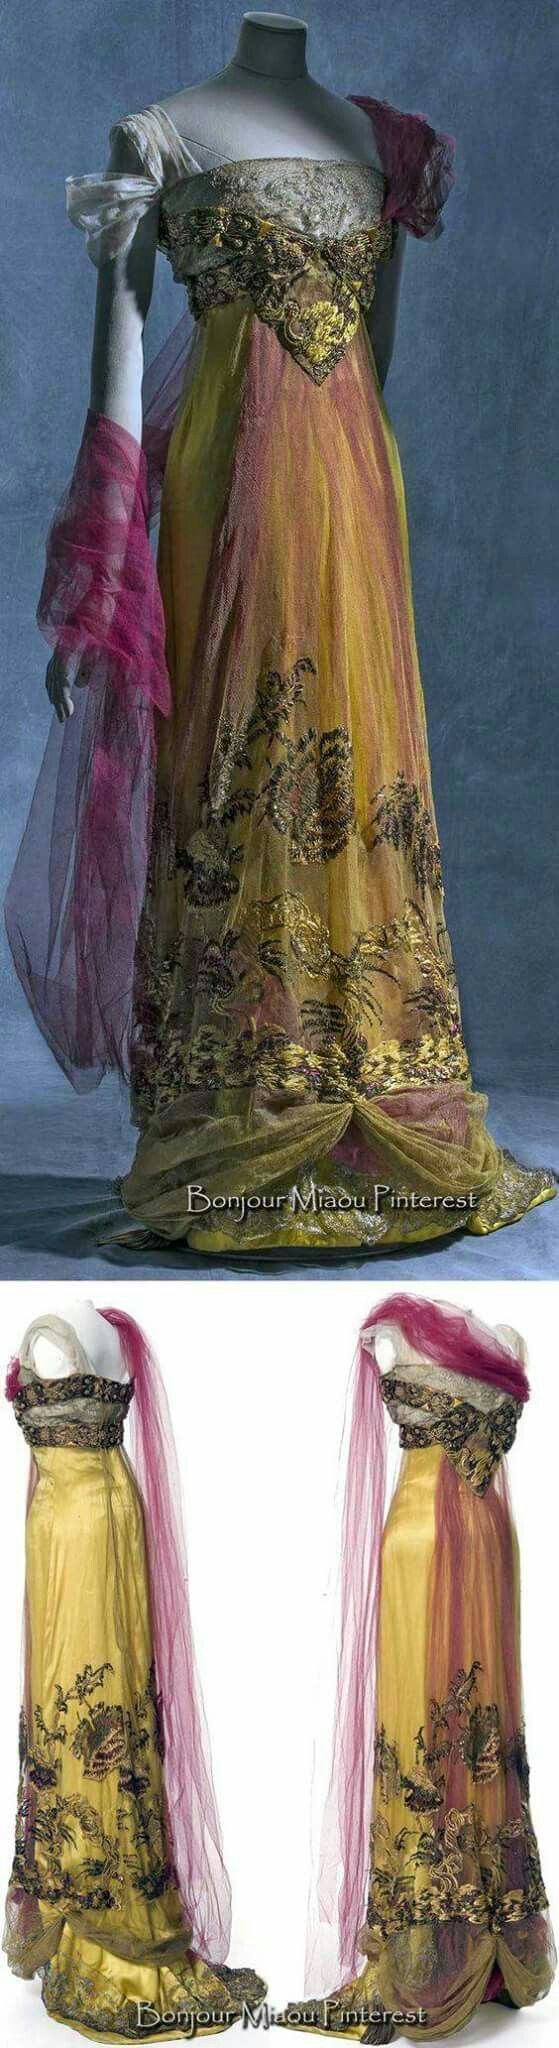 Callot sœurs, evening dress, 1909-1913, silk satin, metallic tulle and silk tulle. © Jean Tholance, Les arts Décoratifs, Paris, collection UFAC.   https://www.pinterest.com/source/europeanafashion.tumblr.com